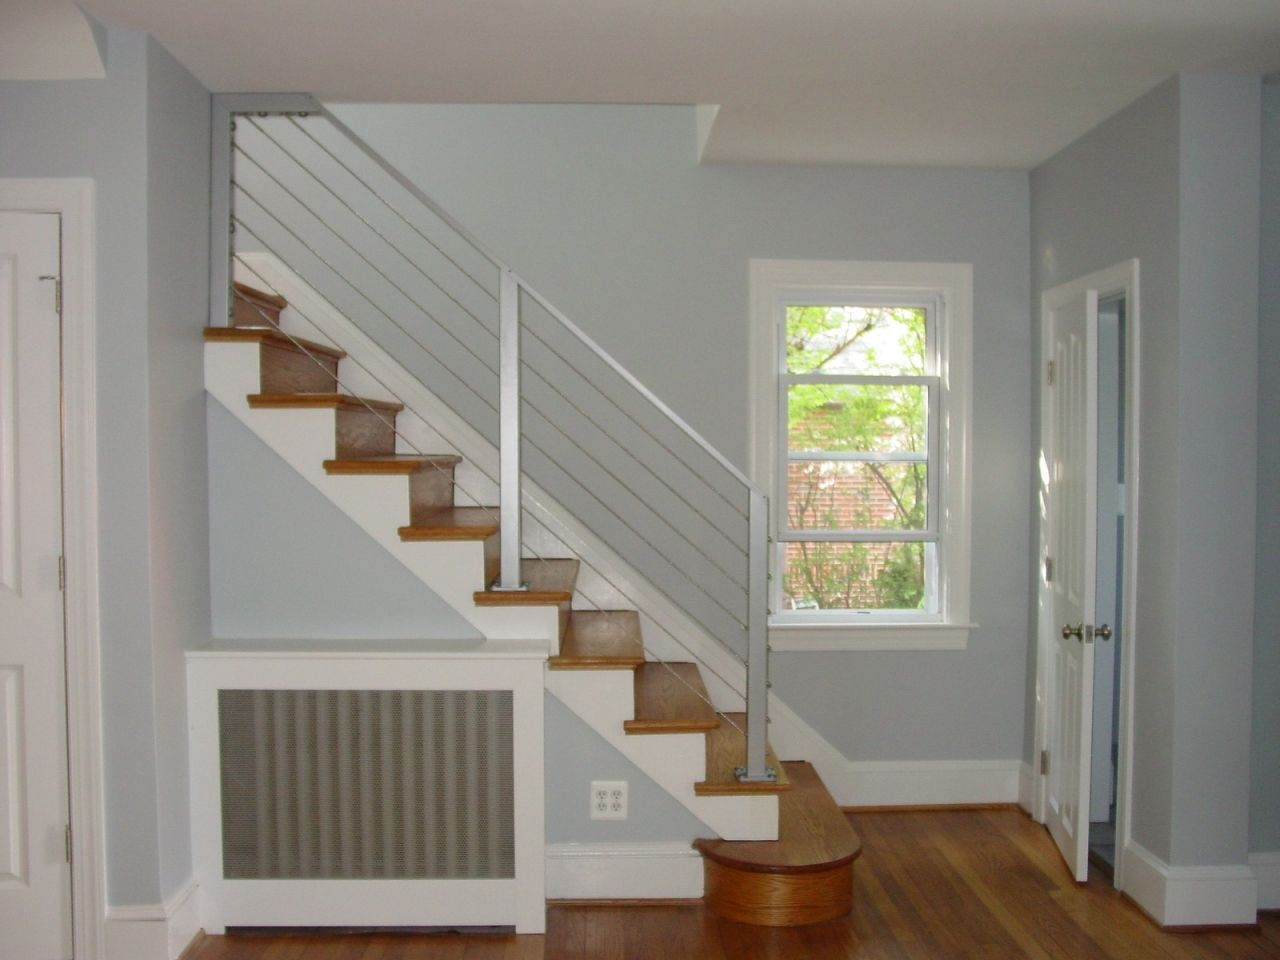 Simple Stairs Design Simple Staircase Window Design Staircase Window